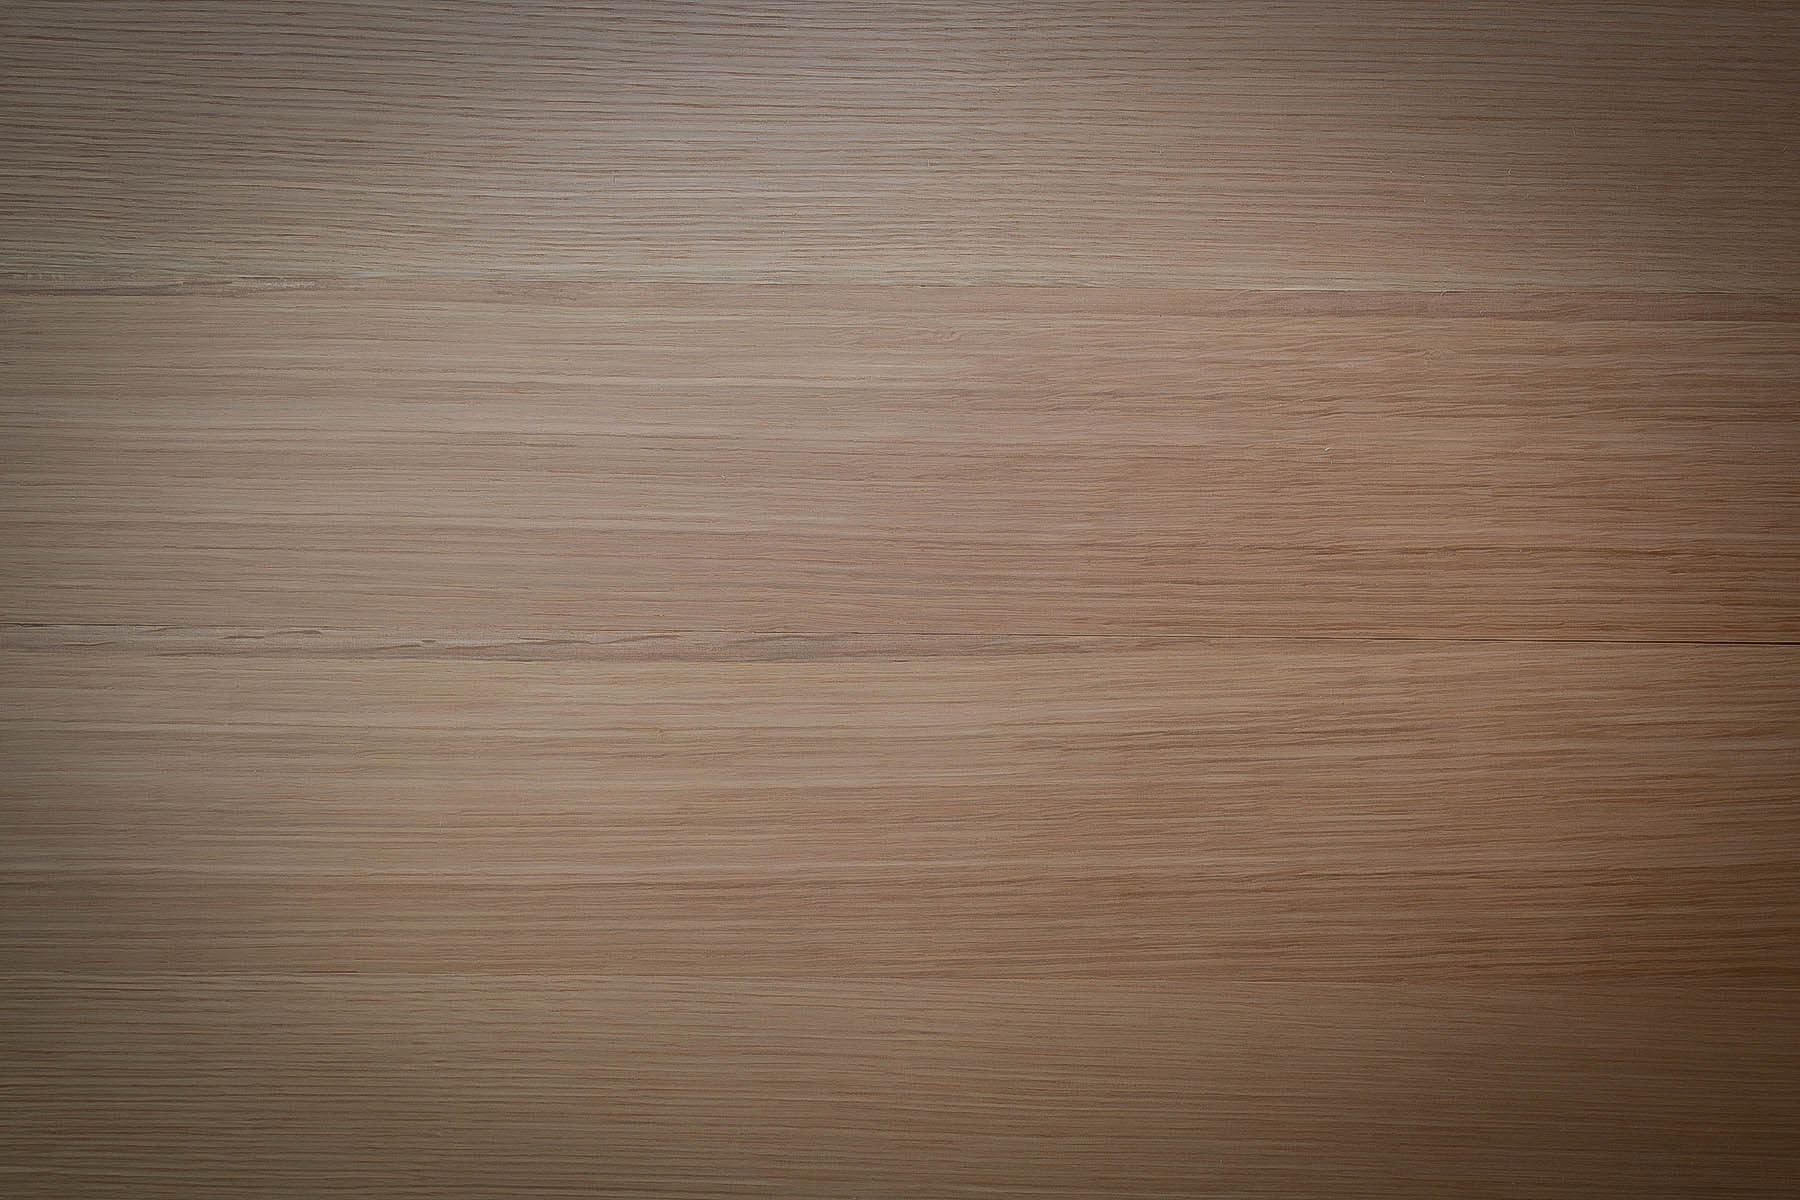 character grade white oak hardwood flooring of graf brothers flooring grade intended for zoomview21 likes